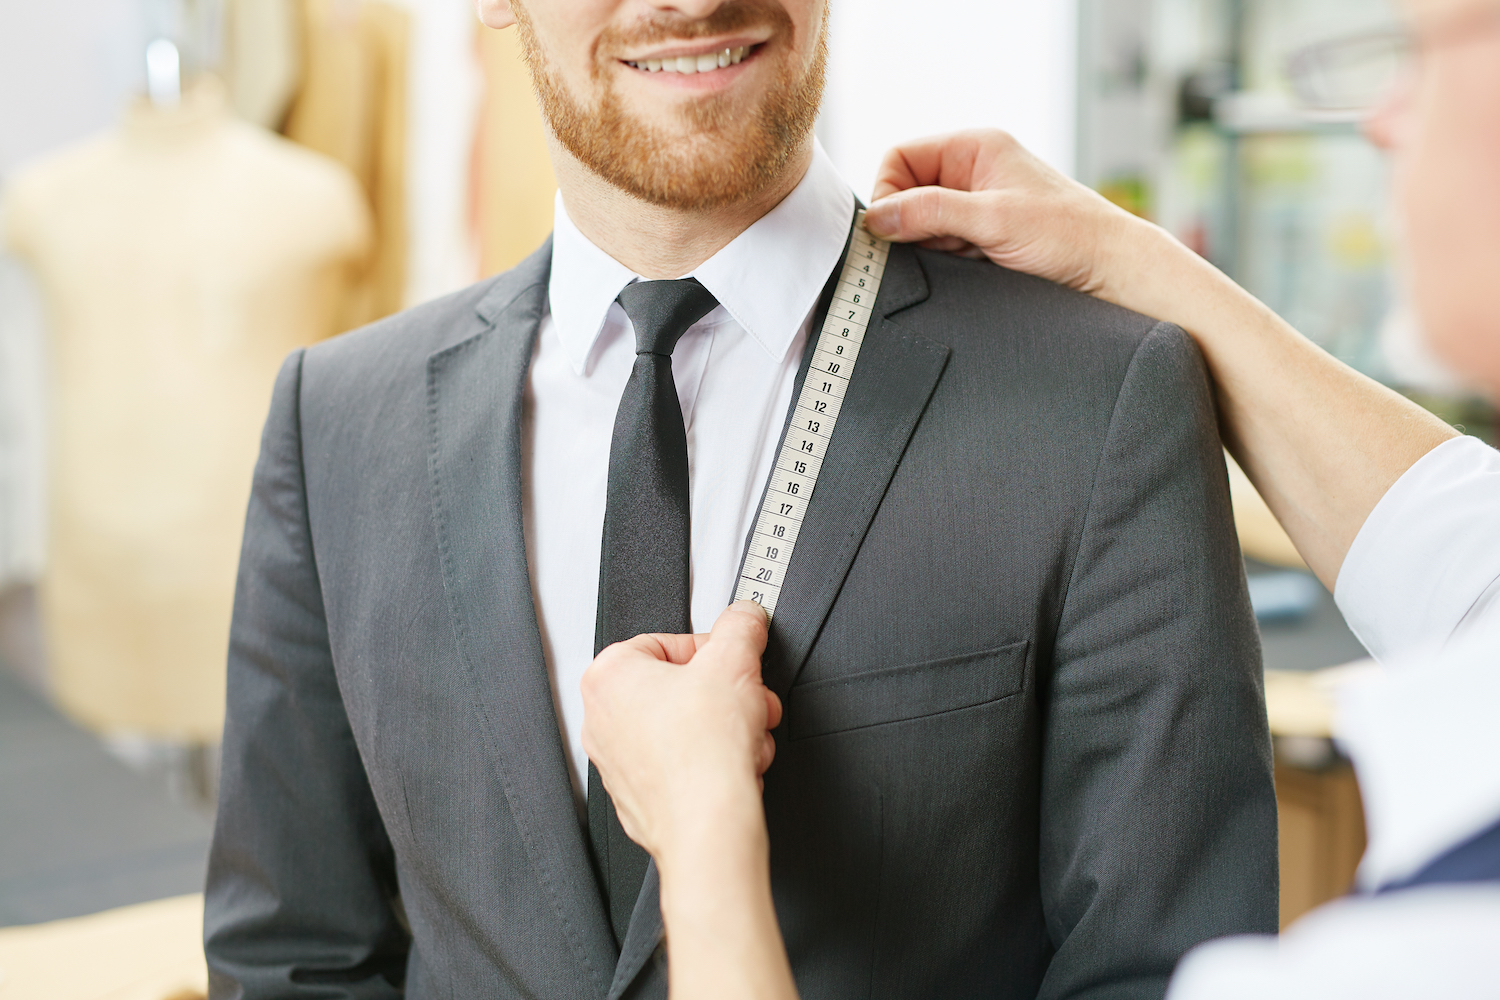 8 Best Tailors In Bangkok That You Can Trust - KAYAK MY